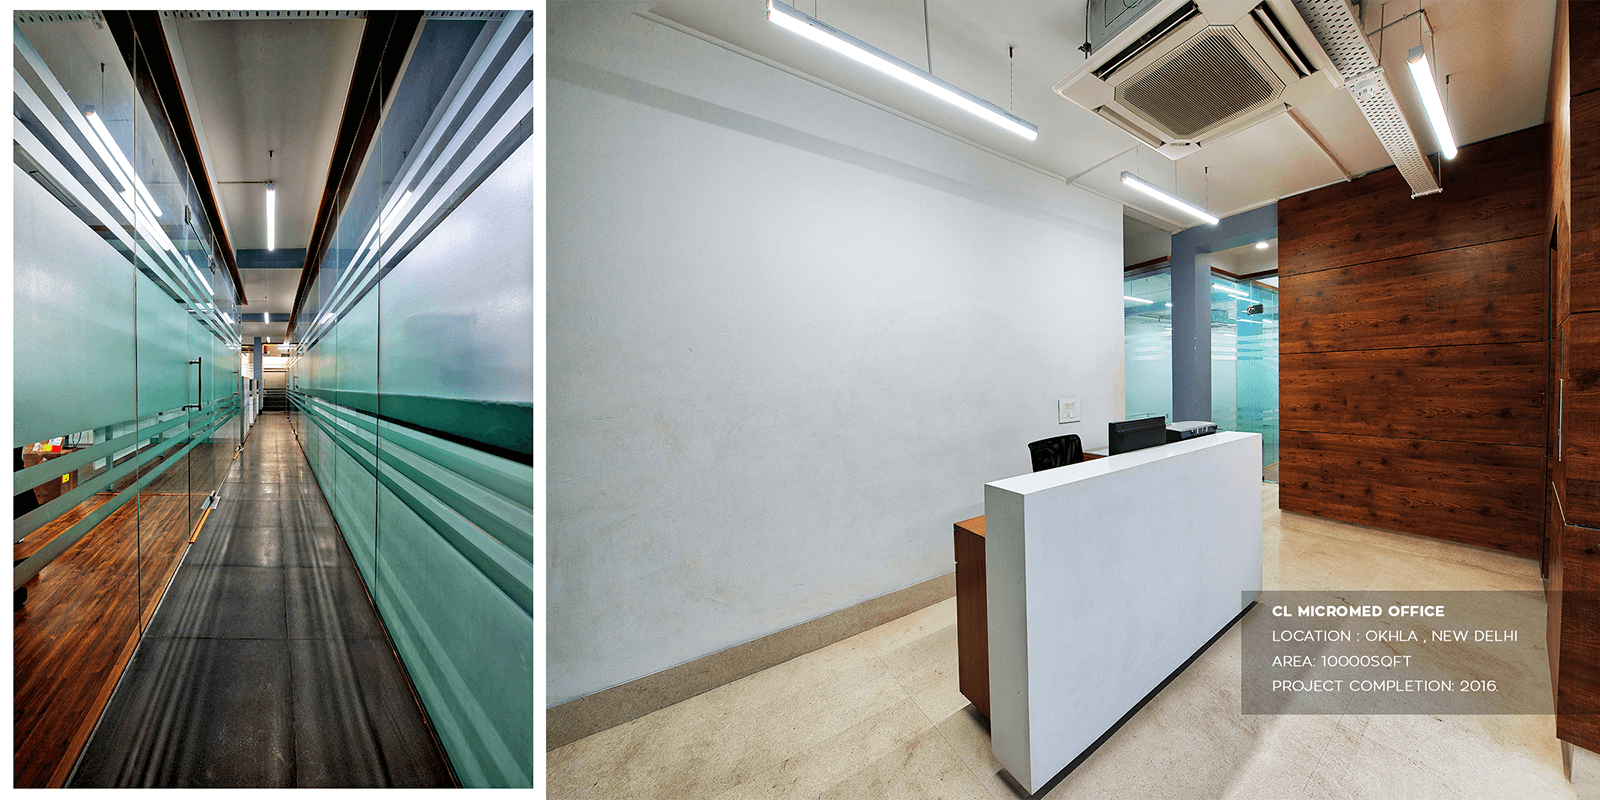 cl-micromed-the-novarch-architects-best-architects-in-cr-park-south-delhi-110019